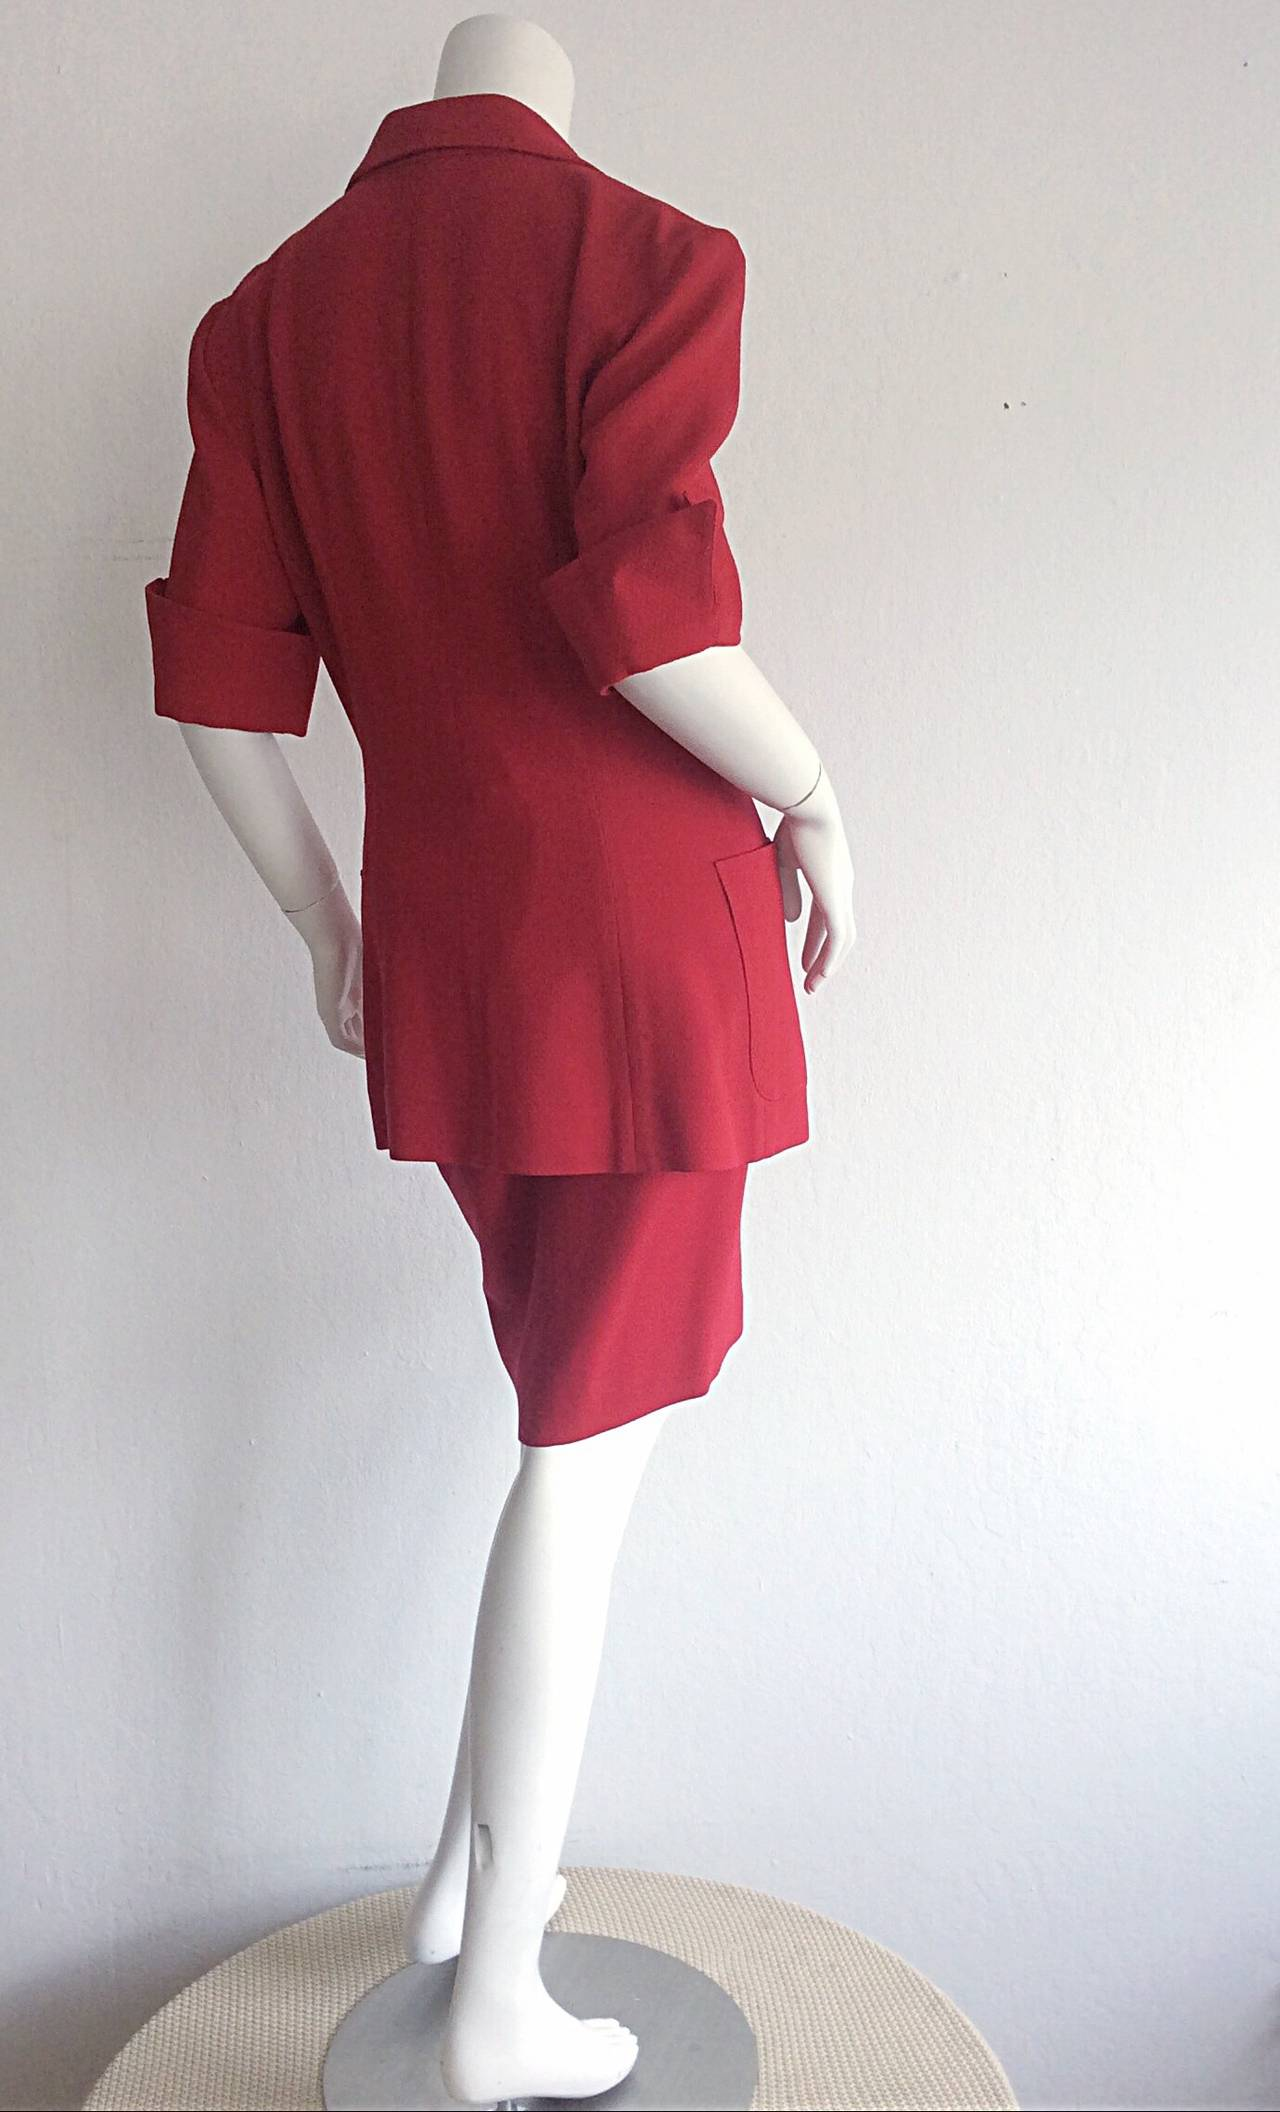 Gorgeous 1990s Vintage Karl Lagerfeld Bright Red Double Breasted Skirt Suit For Sale 1